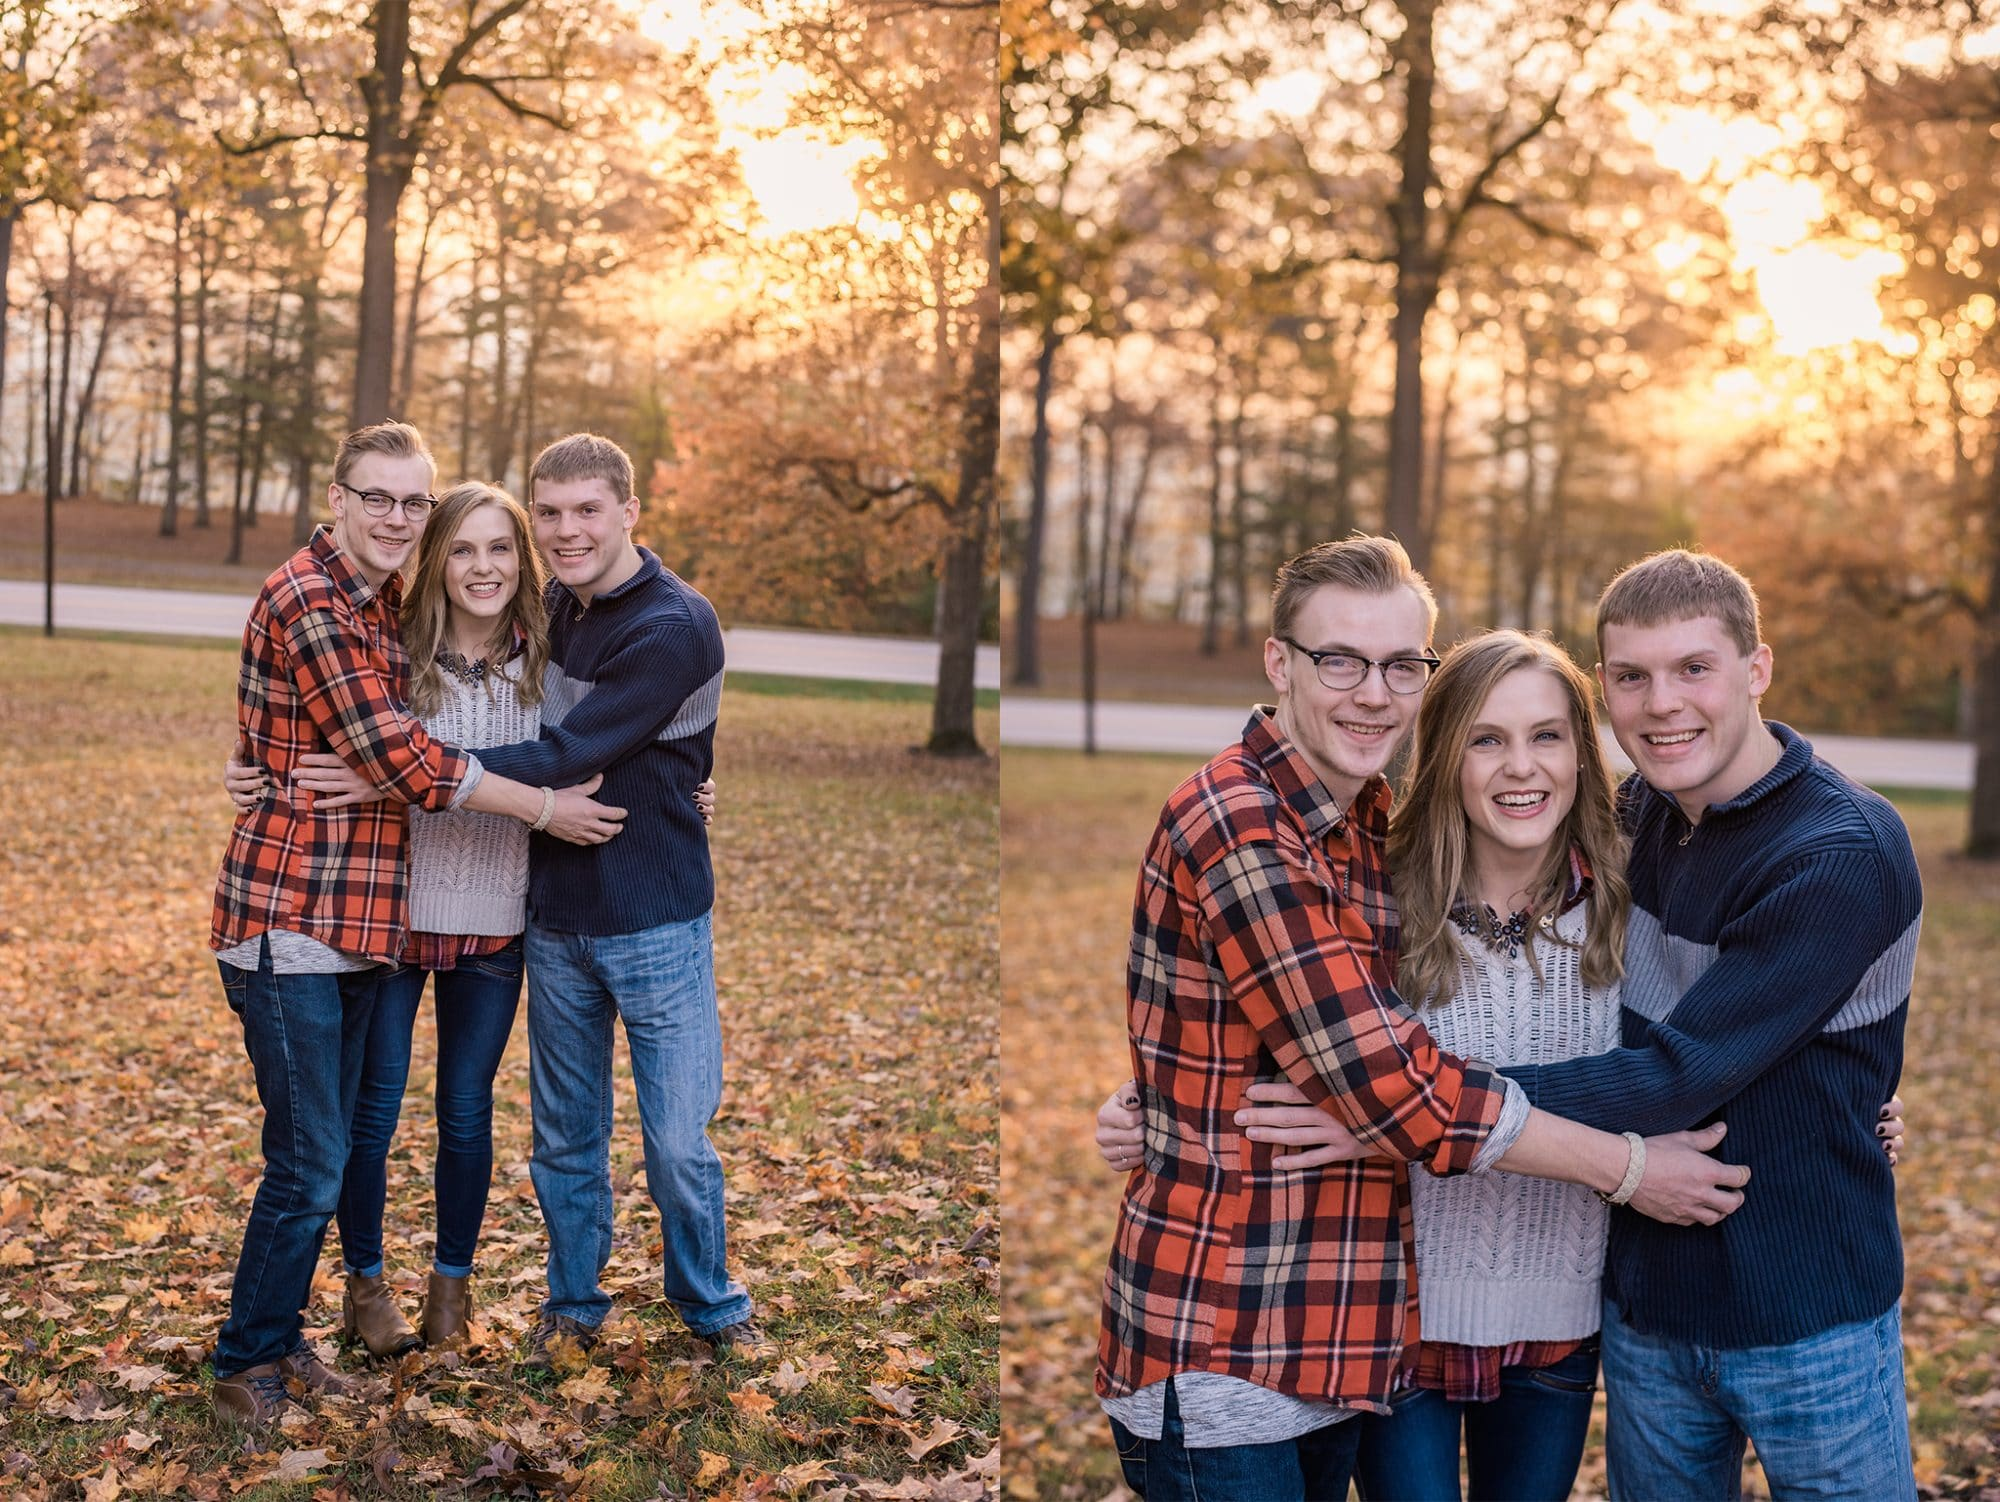 Christmas Surprise for Mom | Lafayette Indiana Photographer | Luminant Photography | Victoria Rayburn | Megan Atwood | Family Photos